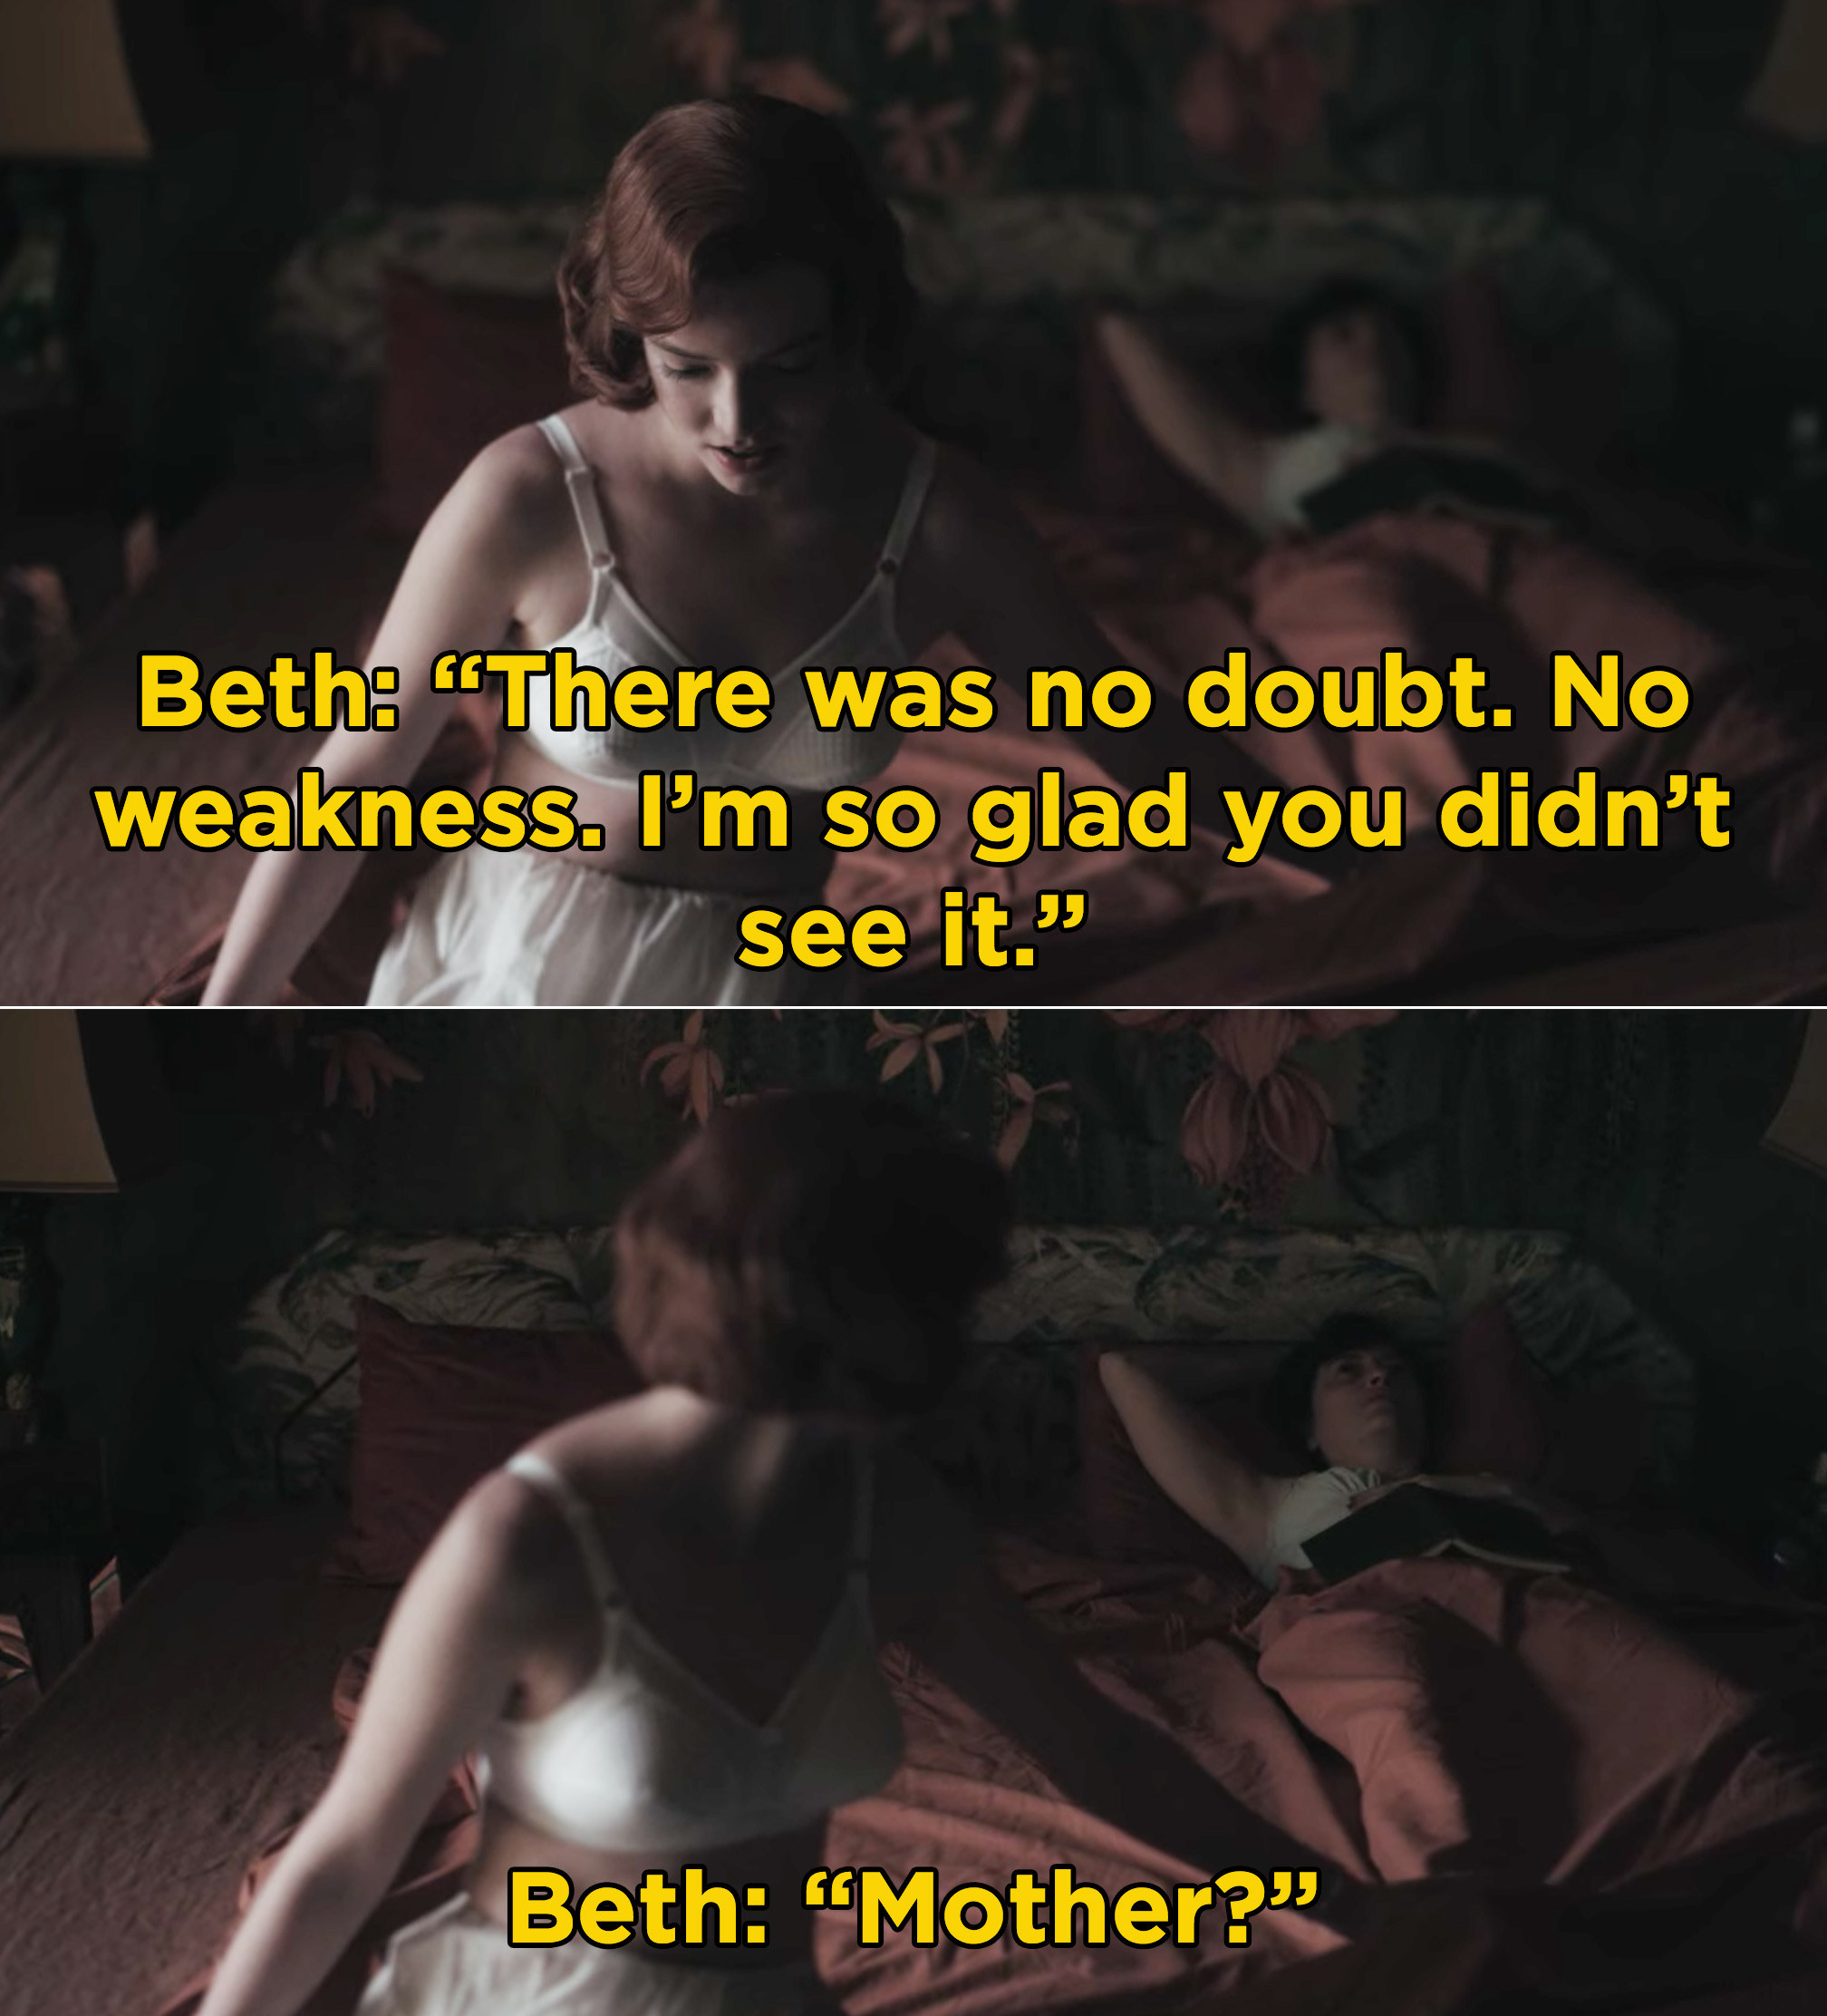 Beth talking to her mother and then realizing she's lying still and not responding